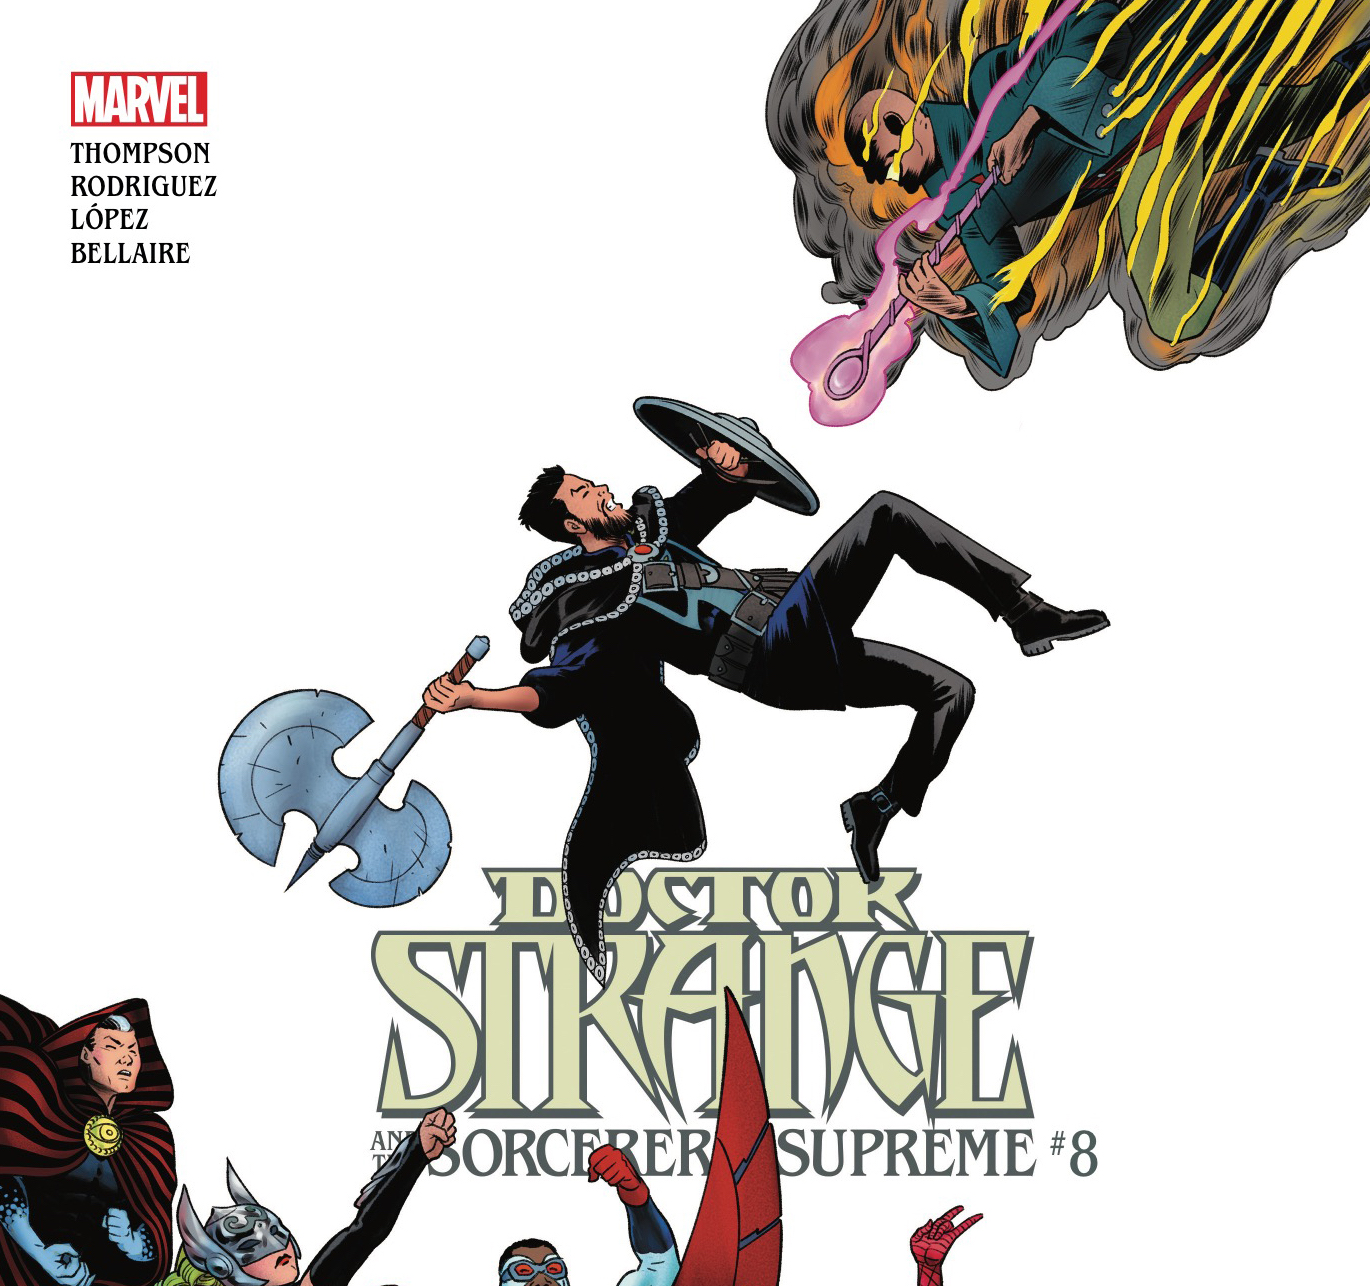 [EXCLUSIVE] Marvel Preview: Doctor Strange and the Sorcerers Supreme #8